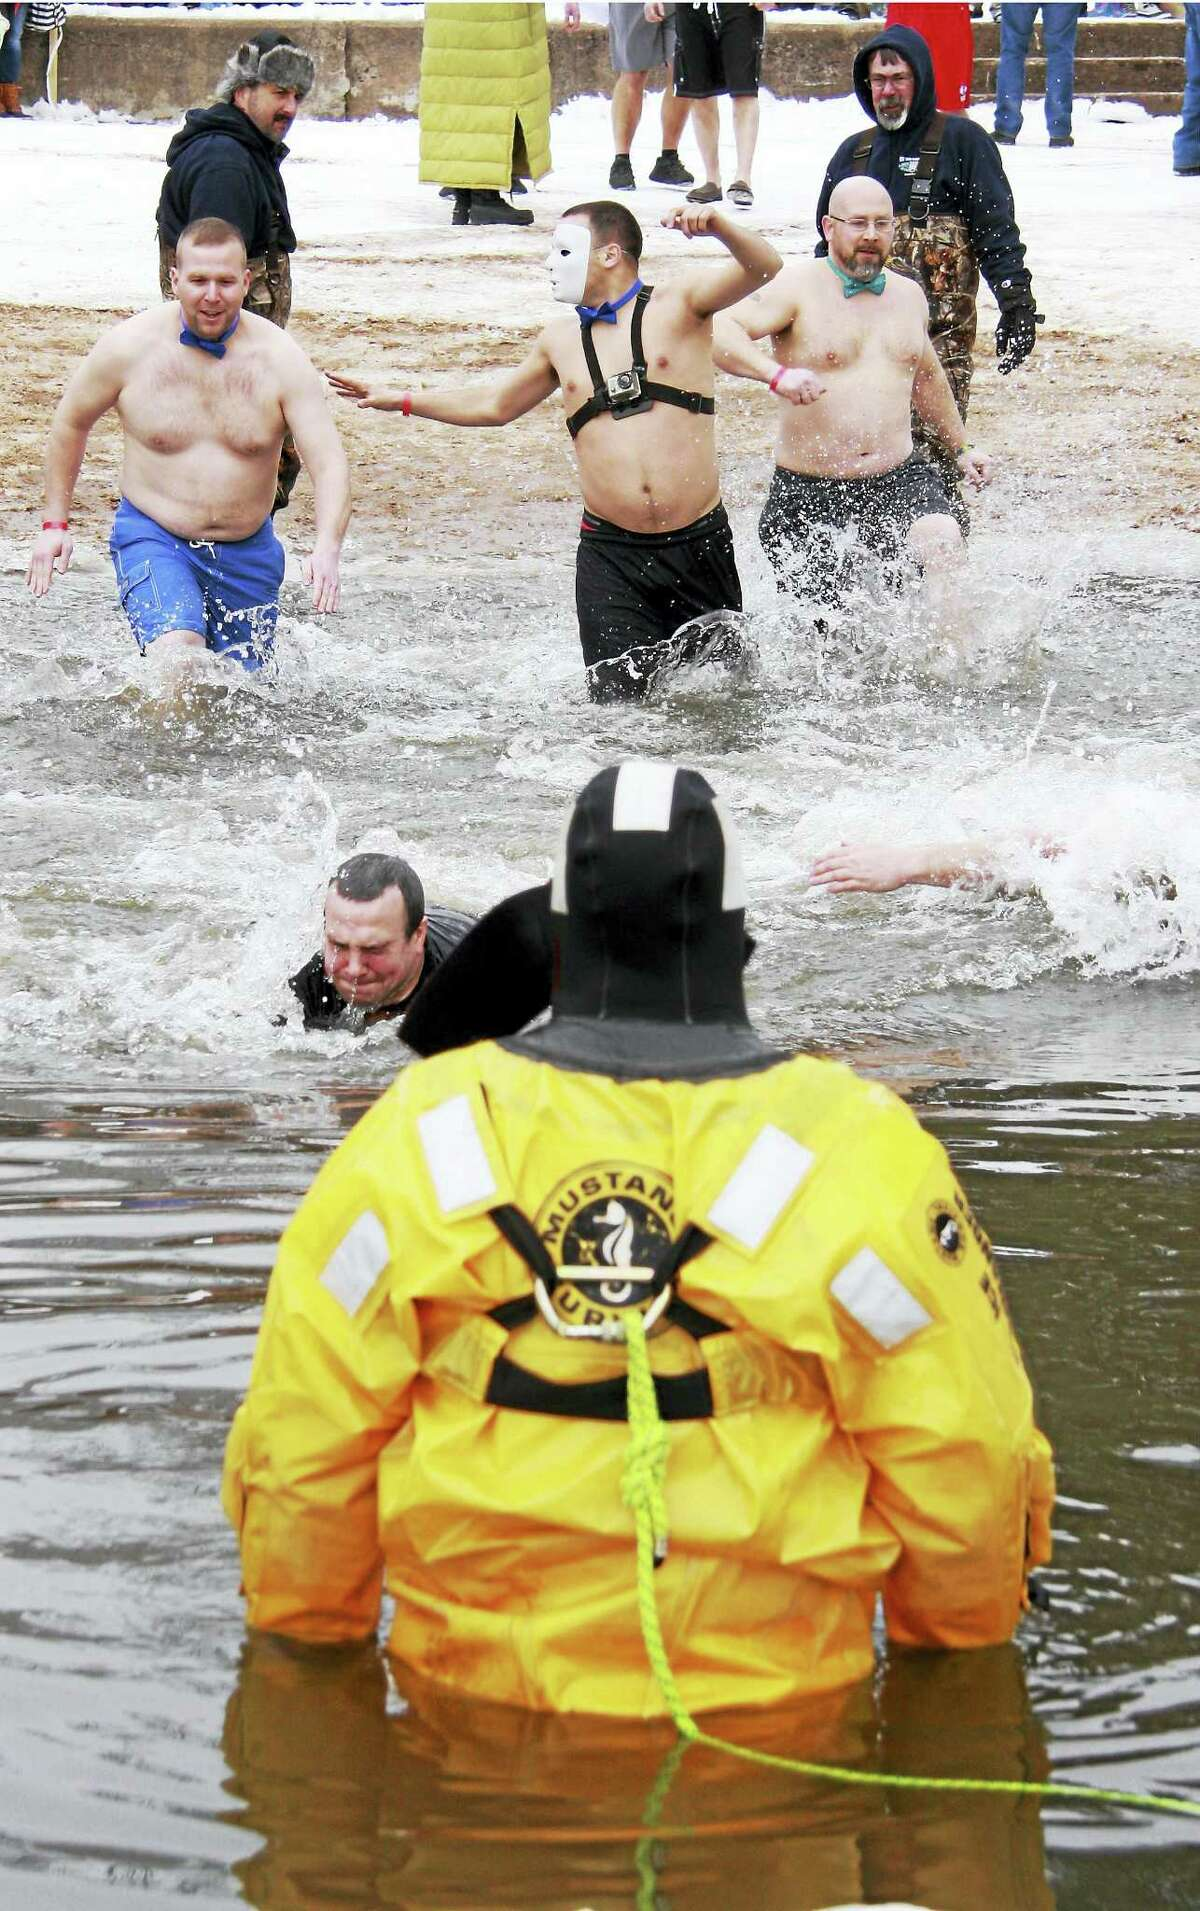 Middletown fire officials in diving gear watch the plunge proceedings to make sure all are safe during the event.